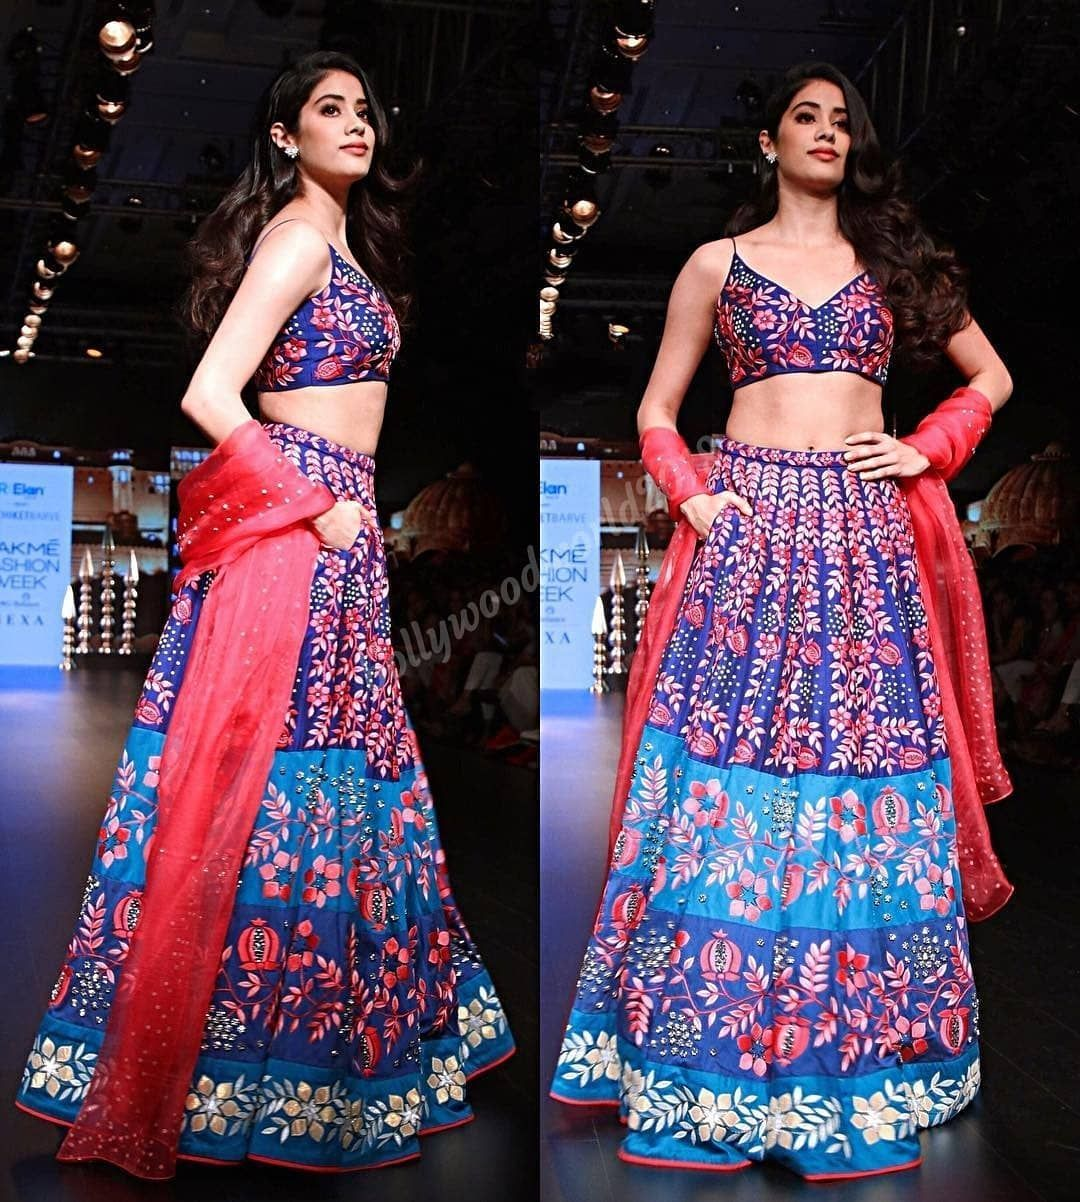 Janhvi Kapoor clicked taking over the runway with all that desi gorgeousness at LFW this evening . Follow @bollywoodworld2018 for latest update. . . . . #bollywoodworld2018 #bollywoodstyle #bollywood #bollywoodmakeup #followback #follow #follownow #followbacknow #followtrain #repost #instagram #bollywoodcinema #celebrity #celebrities #instagood #world #india #delhi #mumbai #jaipur #jaipurcity #insta #jaipurdiaries #rajasthan #saturday #happysaturday #jahnvikapoor #jhanvikapoor #janhvikapoor #lakmefashionweekwinterfestive2018